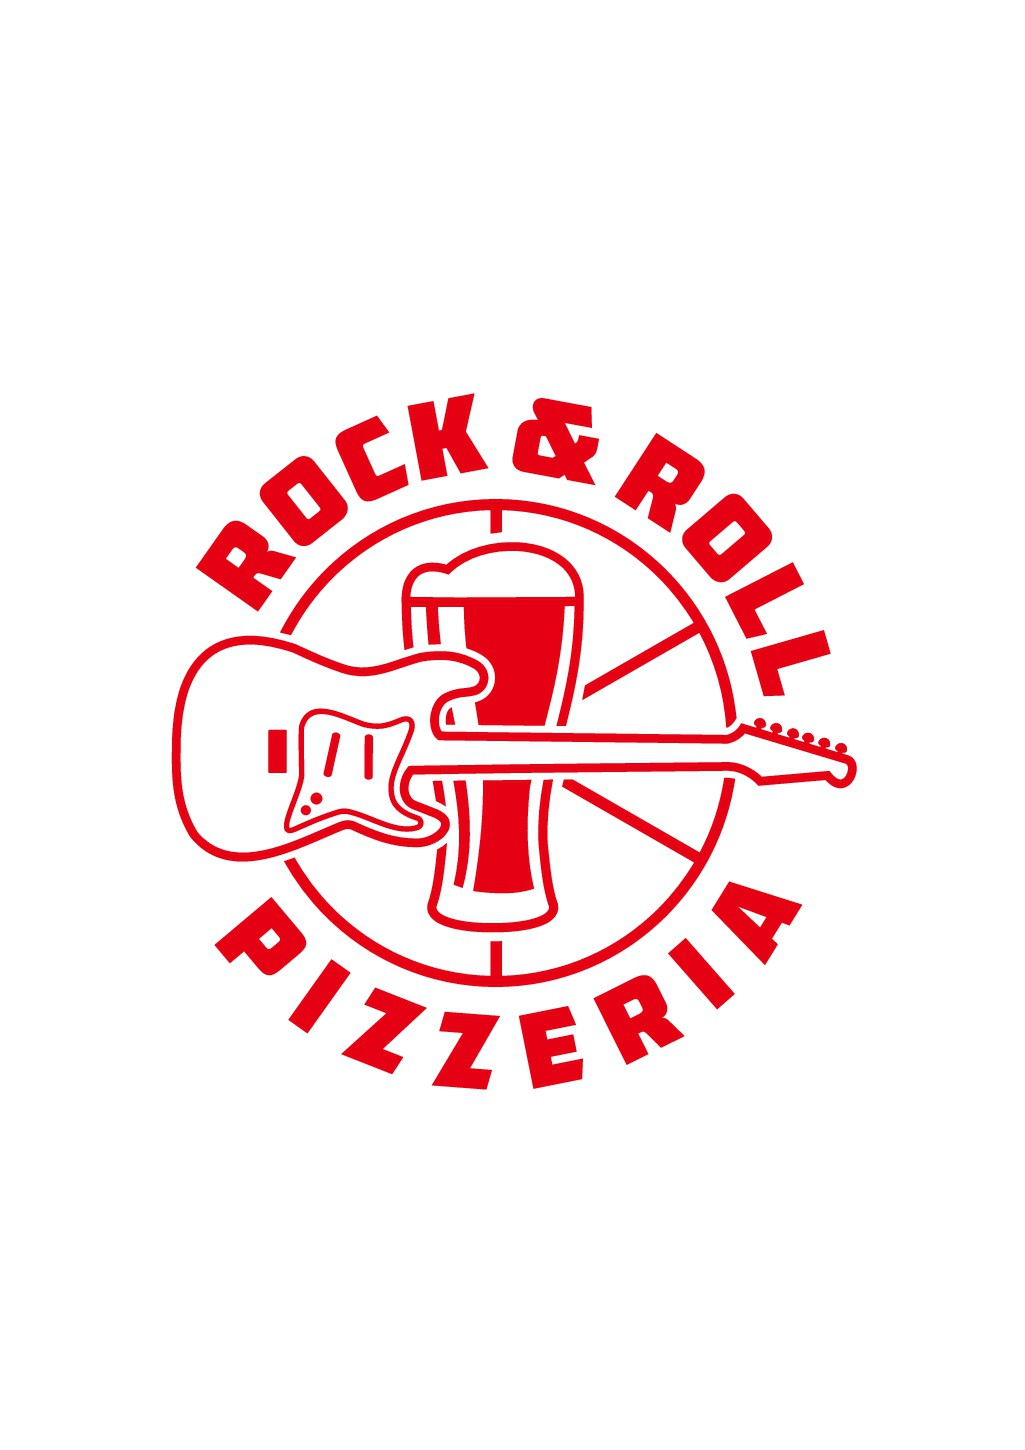 Help us rebrand our rock&roll pizza bar